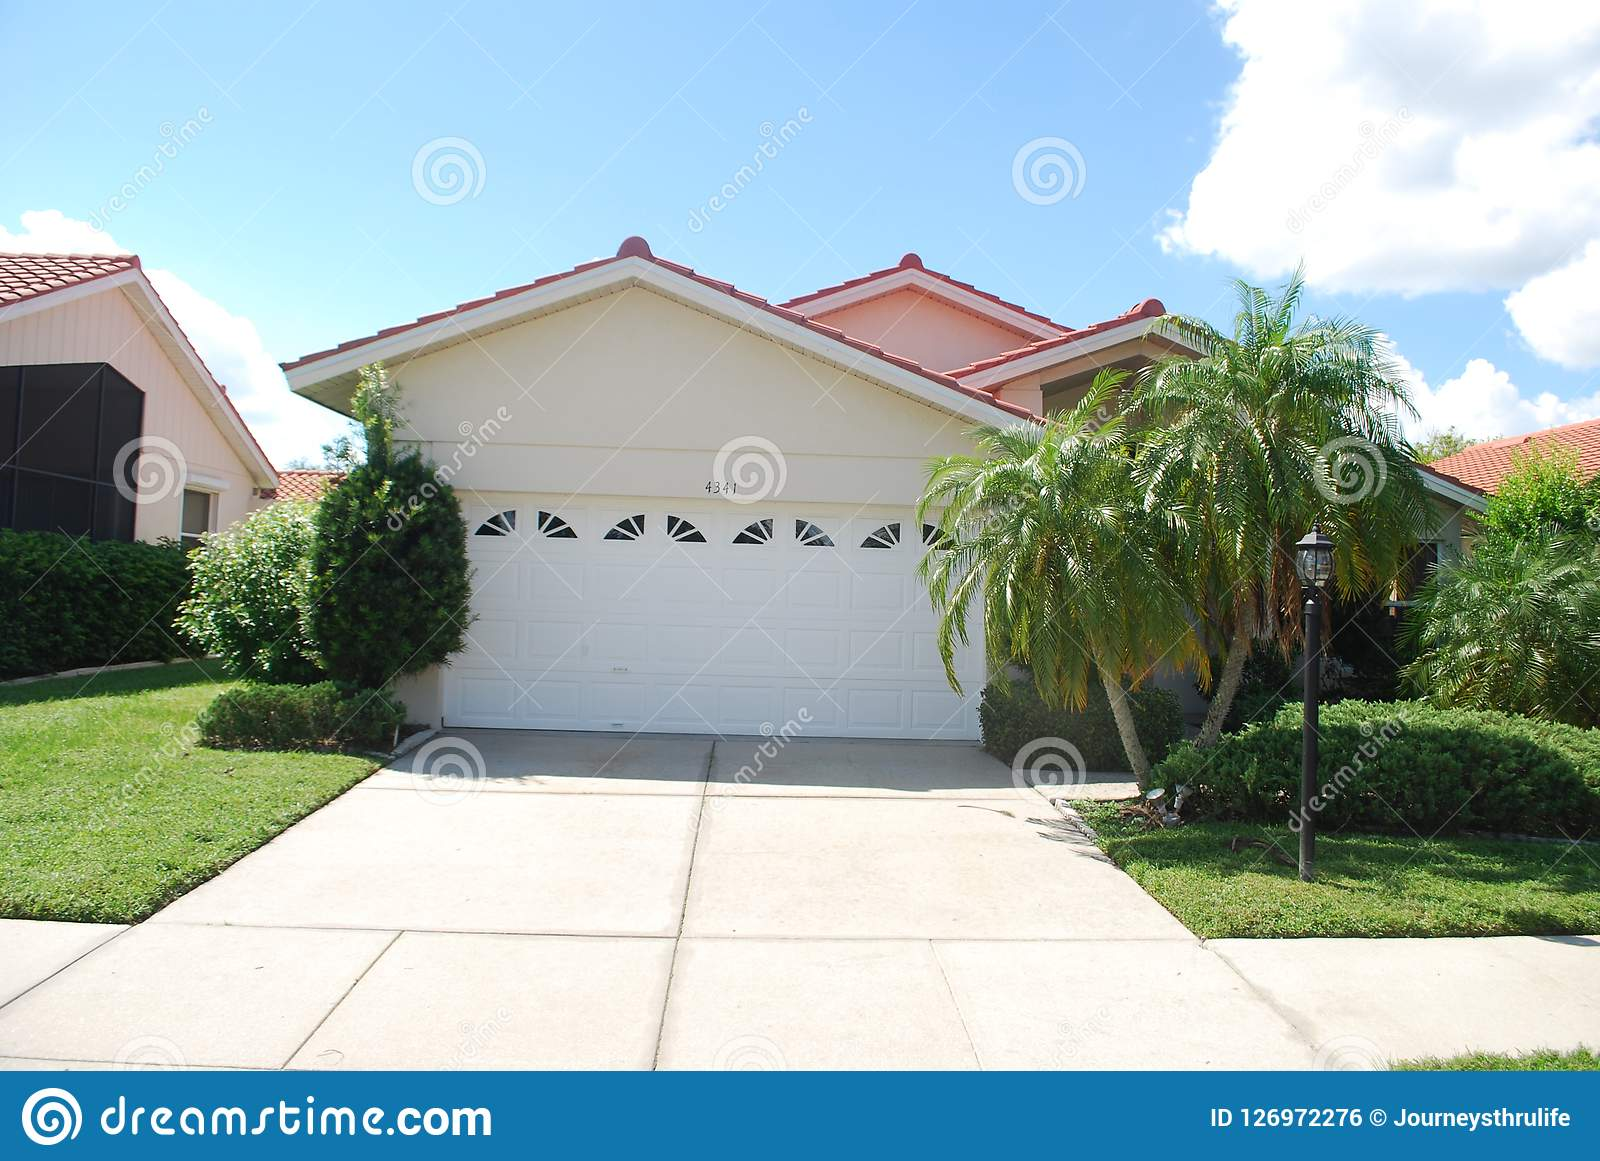 Red Tile Stucco Homes Around A Small Lake In Sarasota Florida Editorial Photo Image Of Sunny Tile 126972276